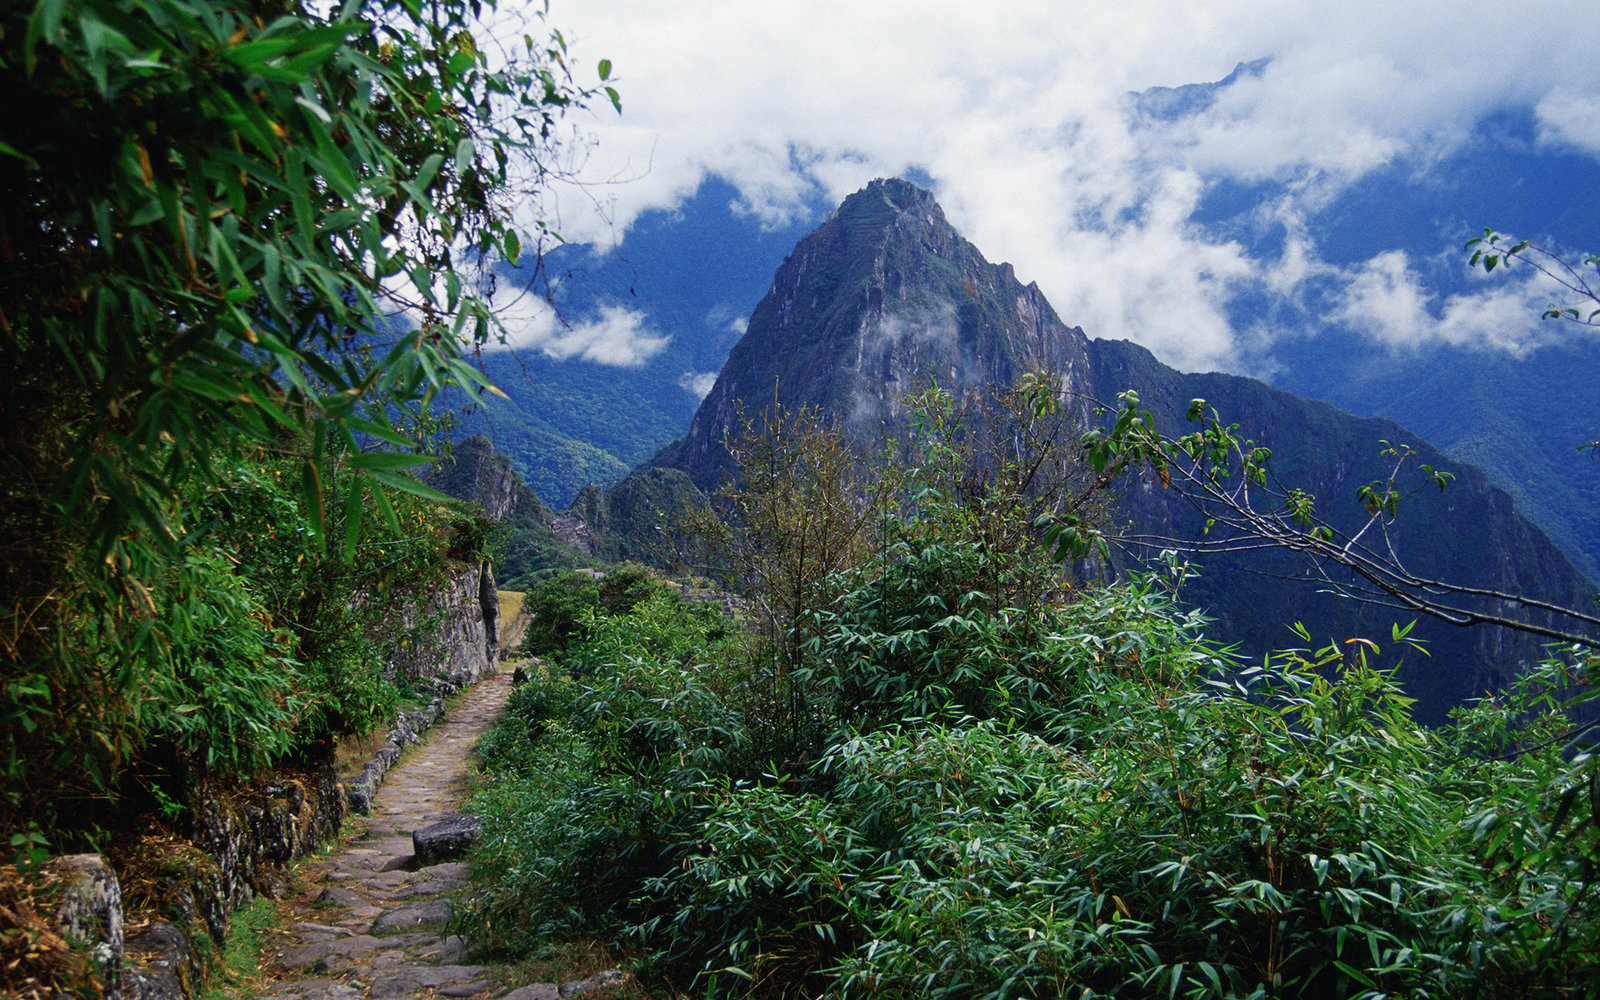 PERU - JULY 01:  Trail to Machu Picchu ruins of Inca citadel in Peru, South America  (Photo by Tim Graham/Getty Images)